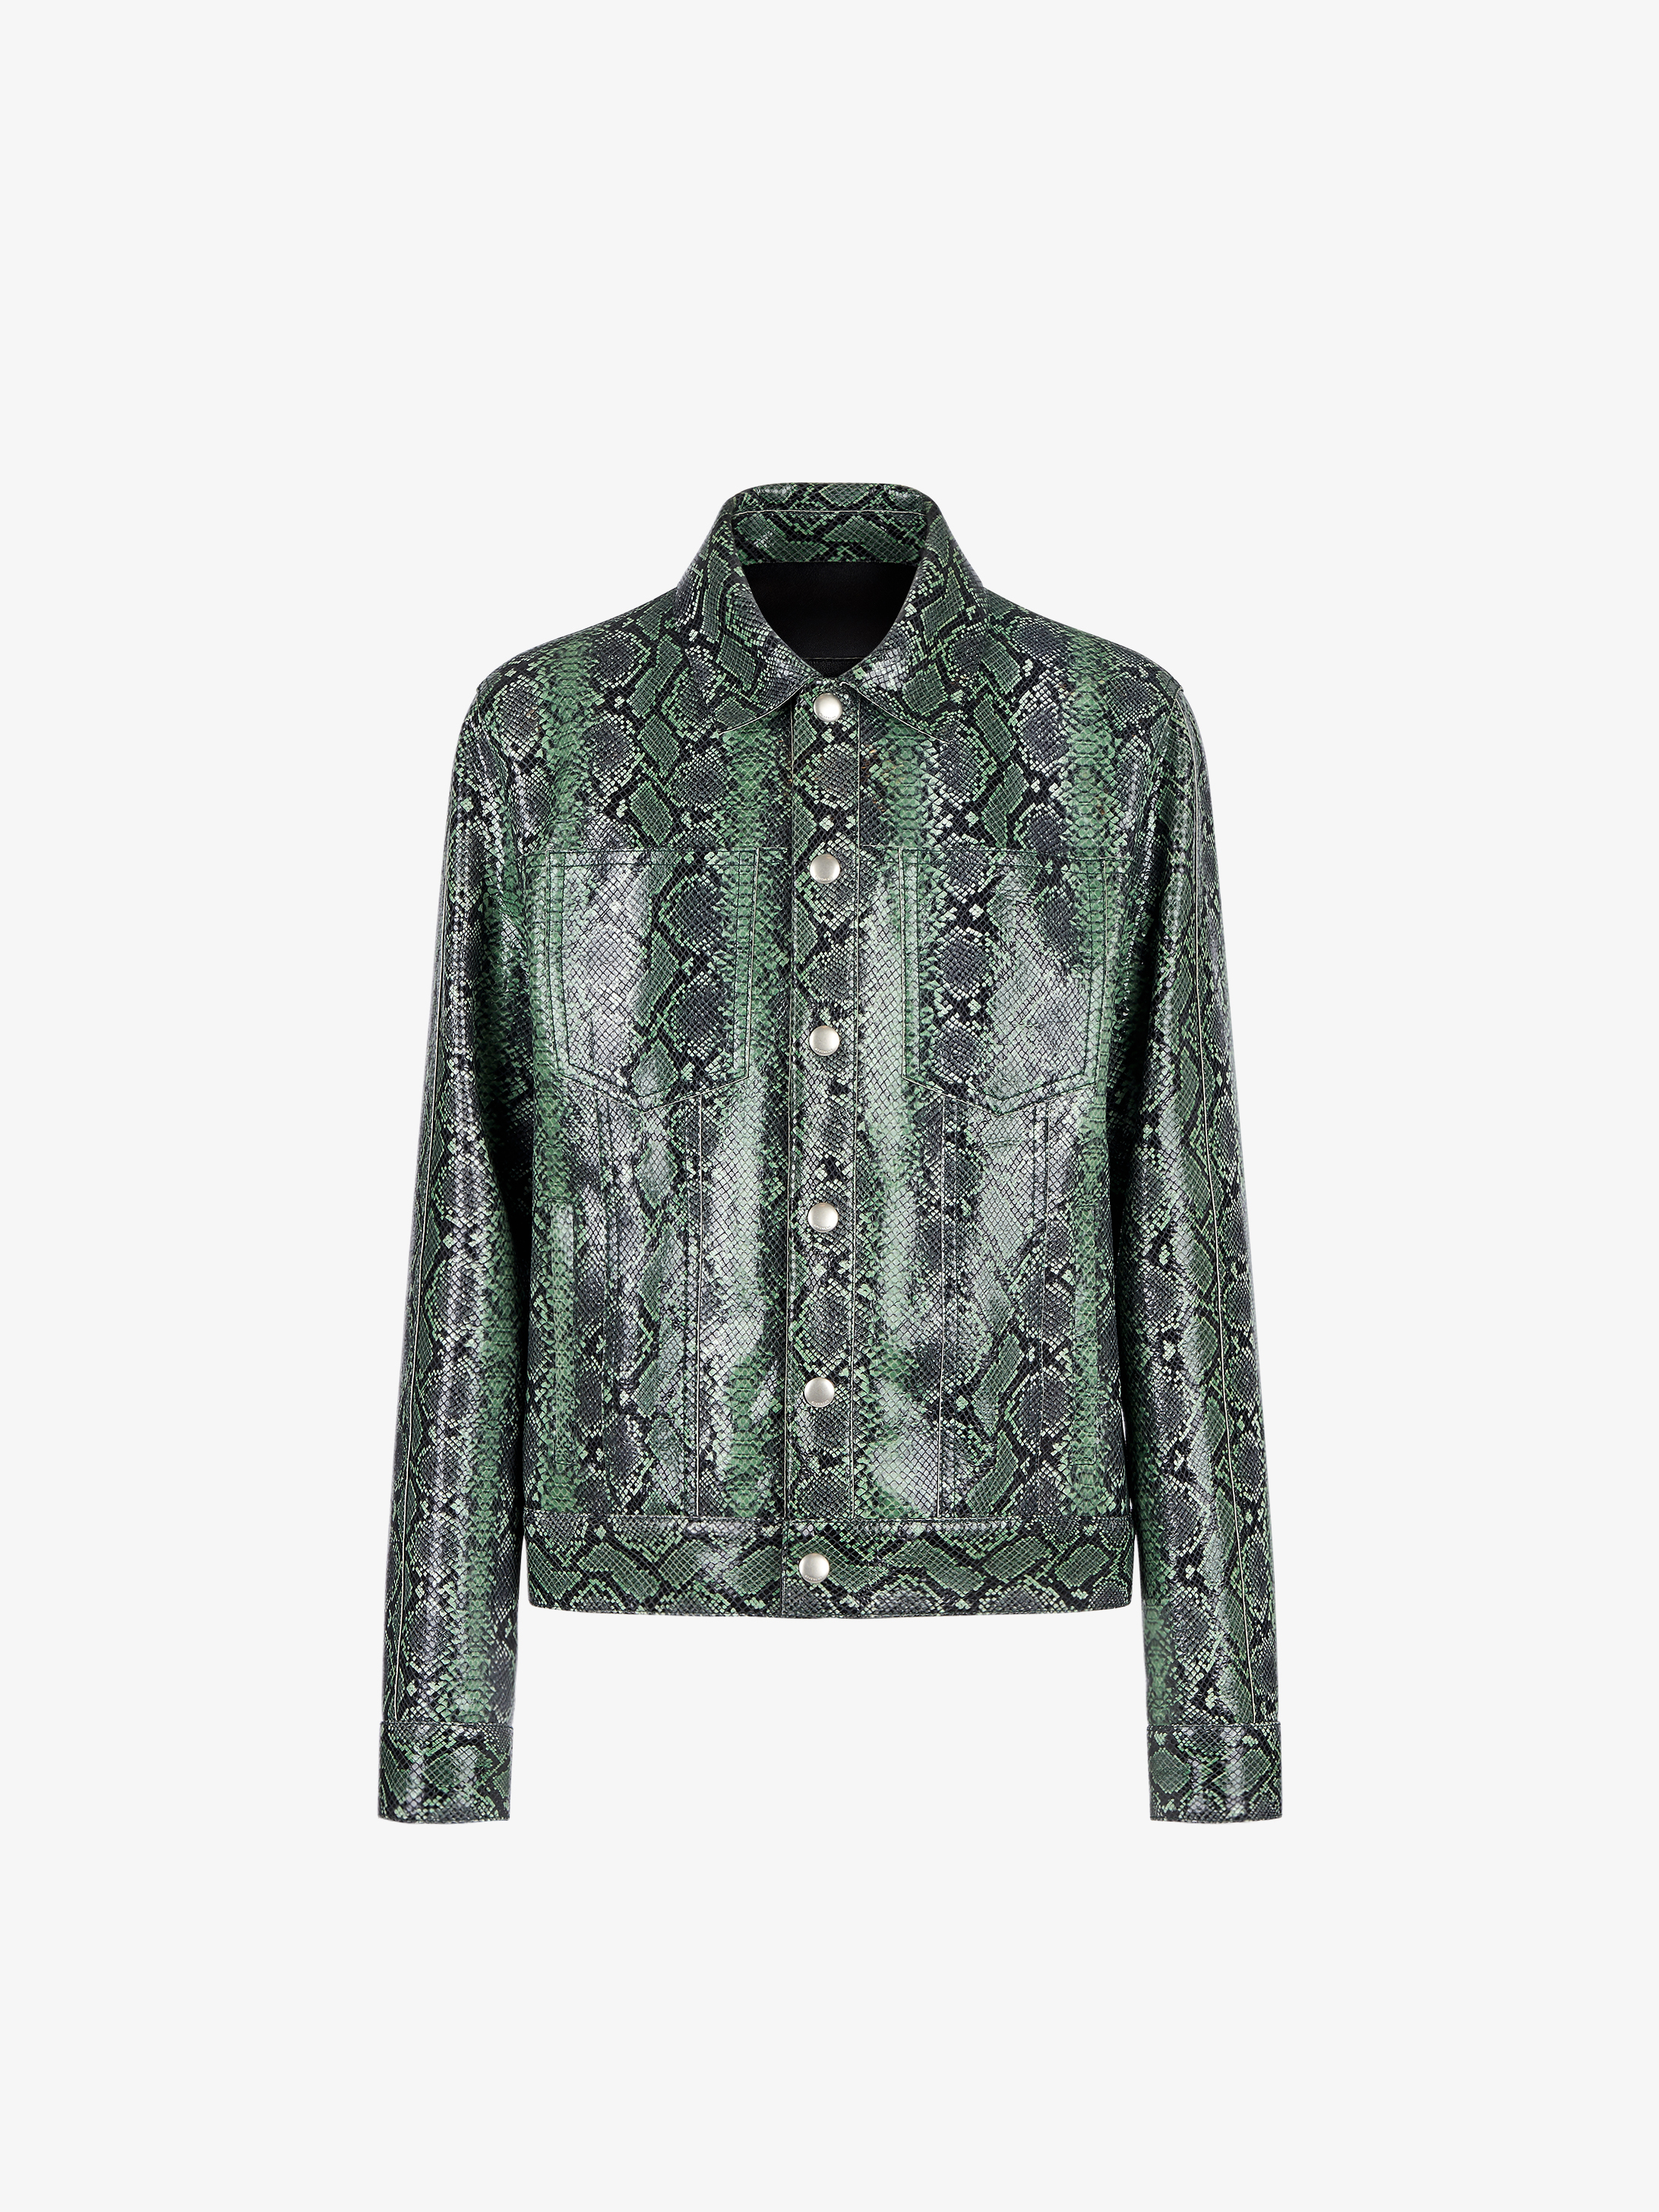 Python-effect jacket in leather